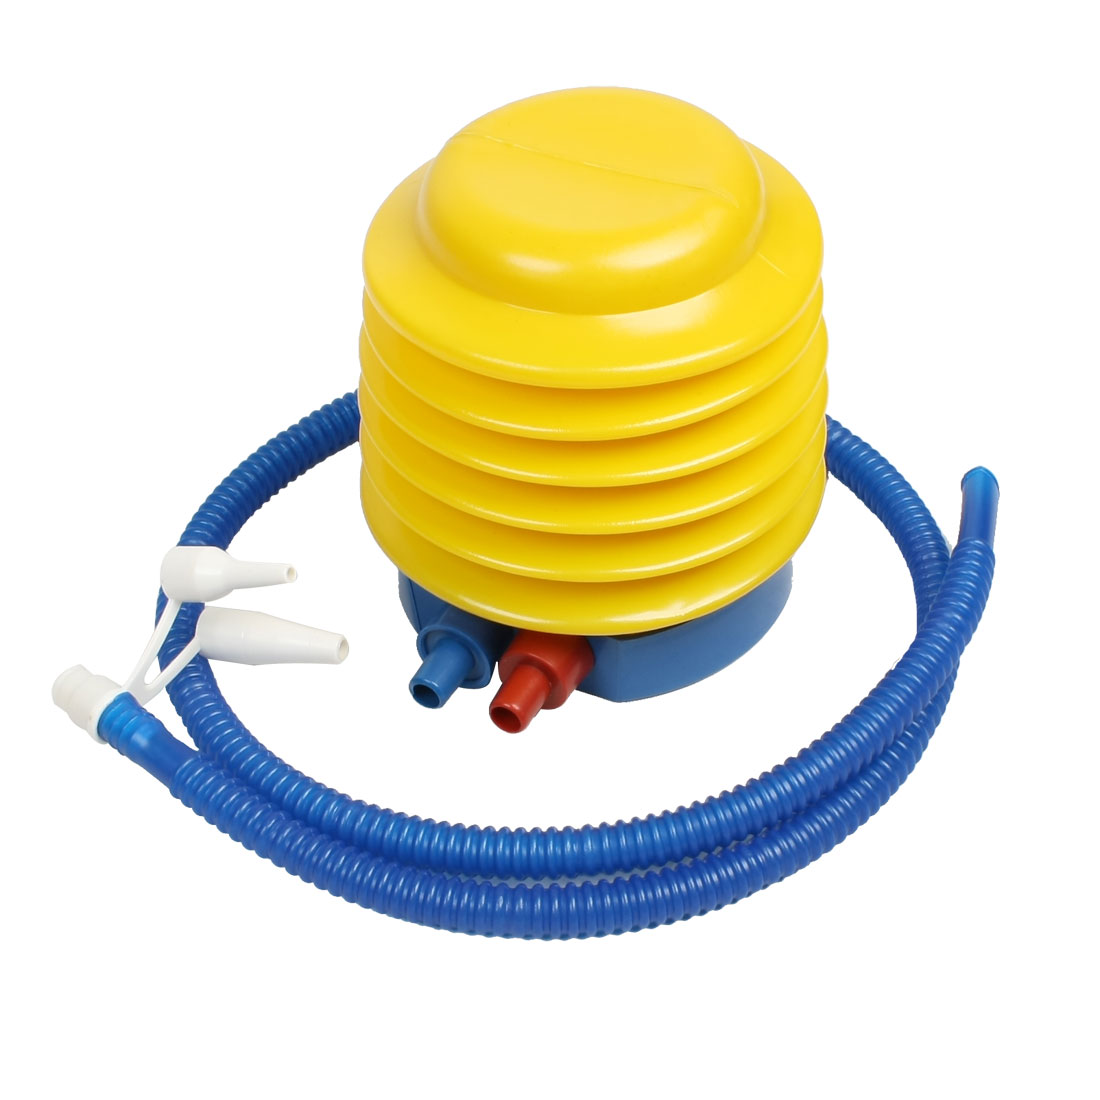 Unique Bargains Air Toy Blue Yellow Red Plastic Manual Air Pump Inflator for Kids